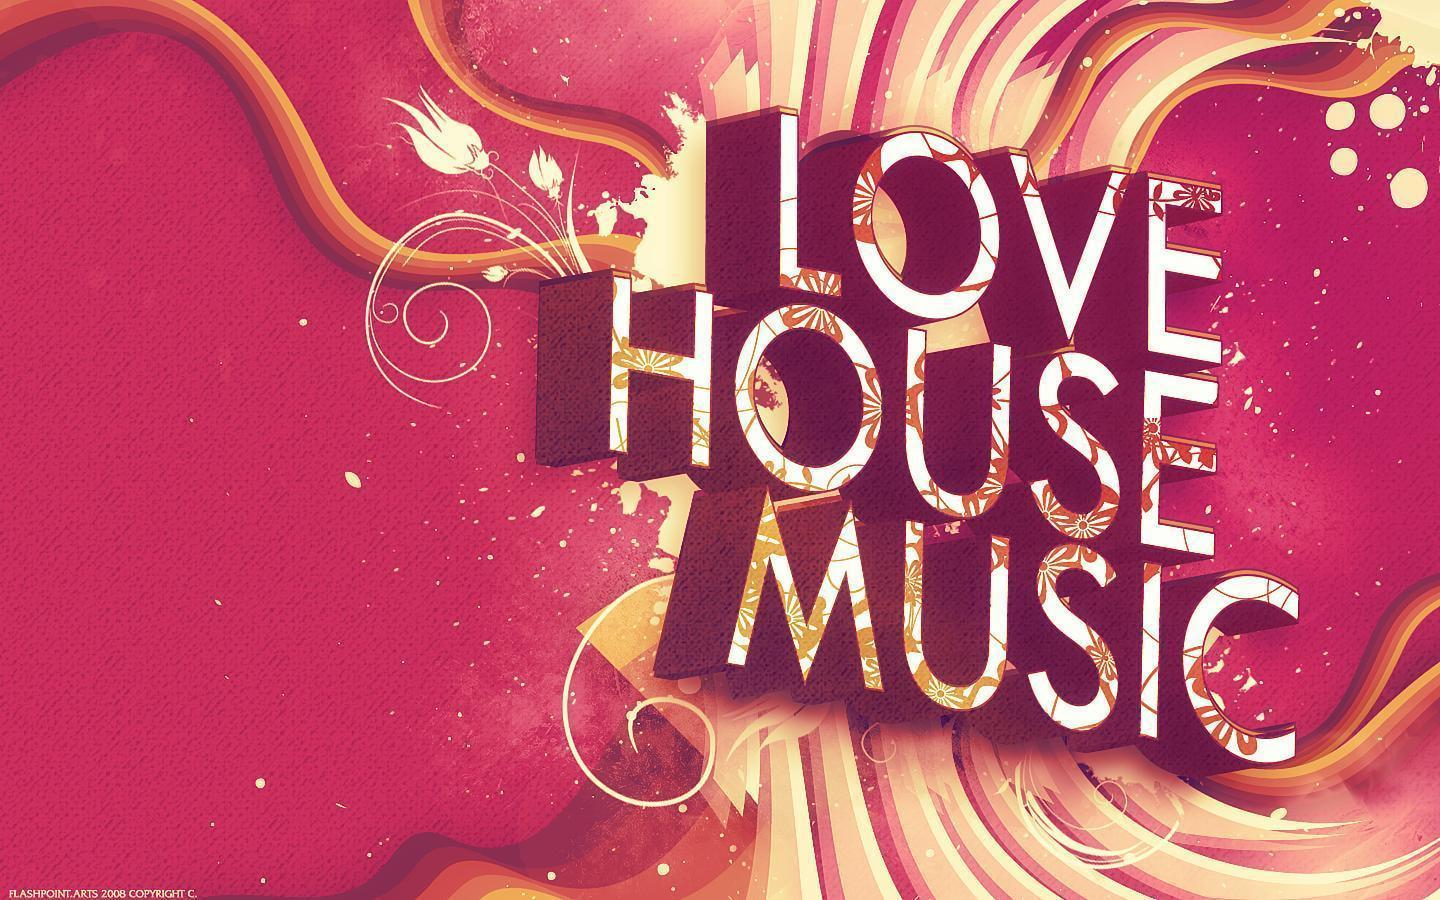 Electro House Music Wallpapers 1440x900